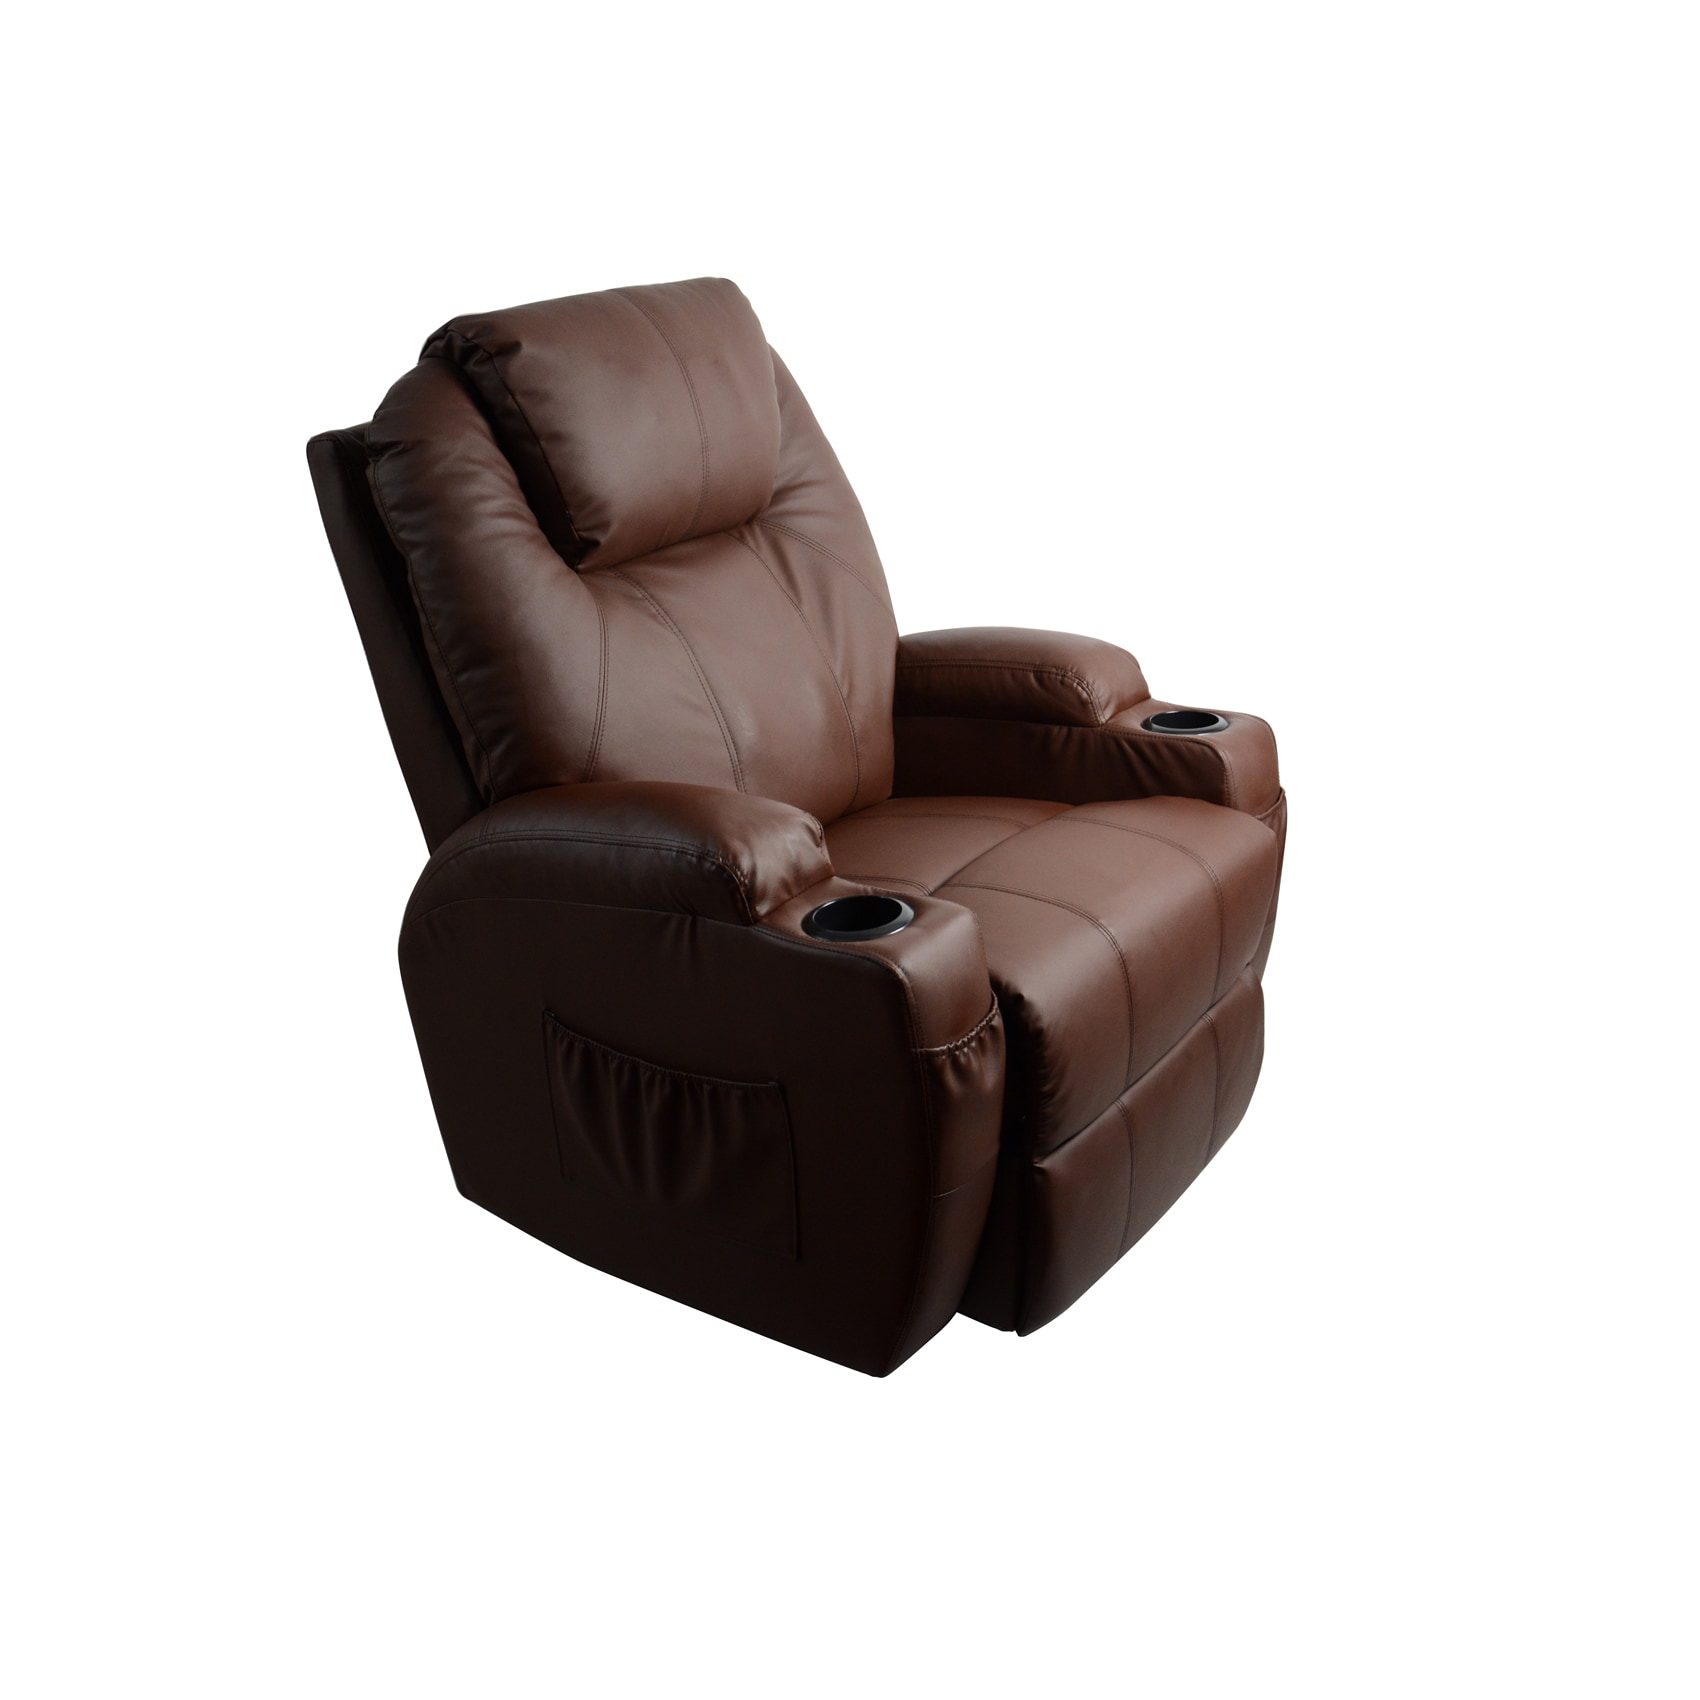 Shop MCombo Brown Massage Recliner Vibrating Sofa Heated Leather   Free  Shipping Today   Overstock.com   14415454